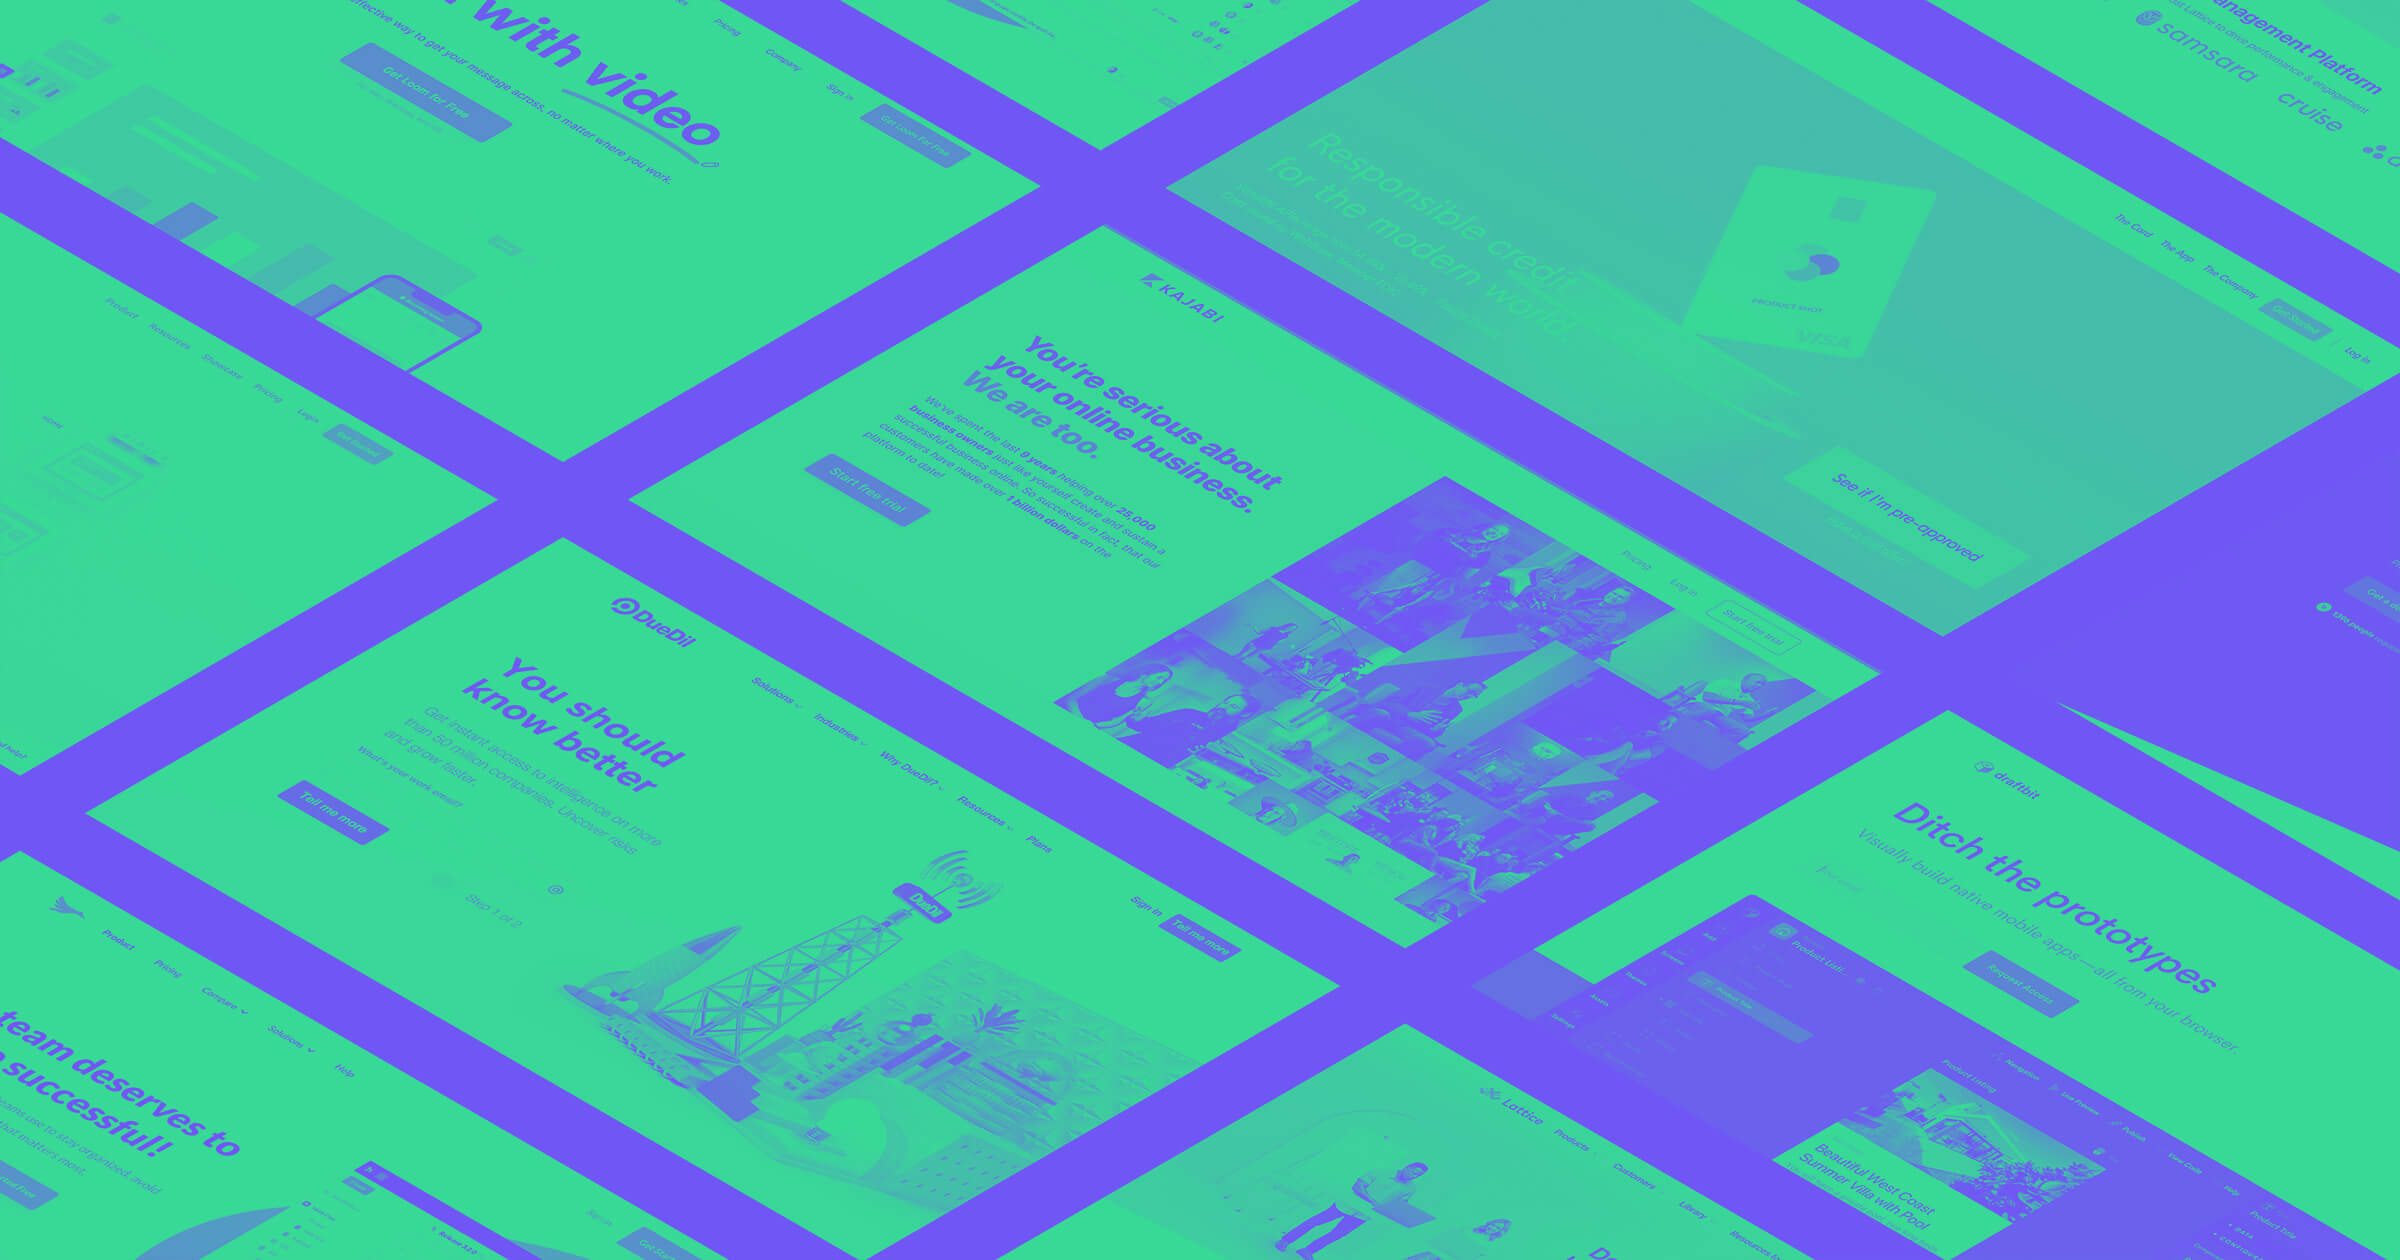 A green and purple gradient overlay of an isometric grid of home page screenshots from various SaaS websites that were build in Webflow.